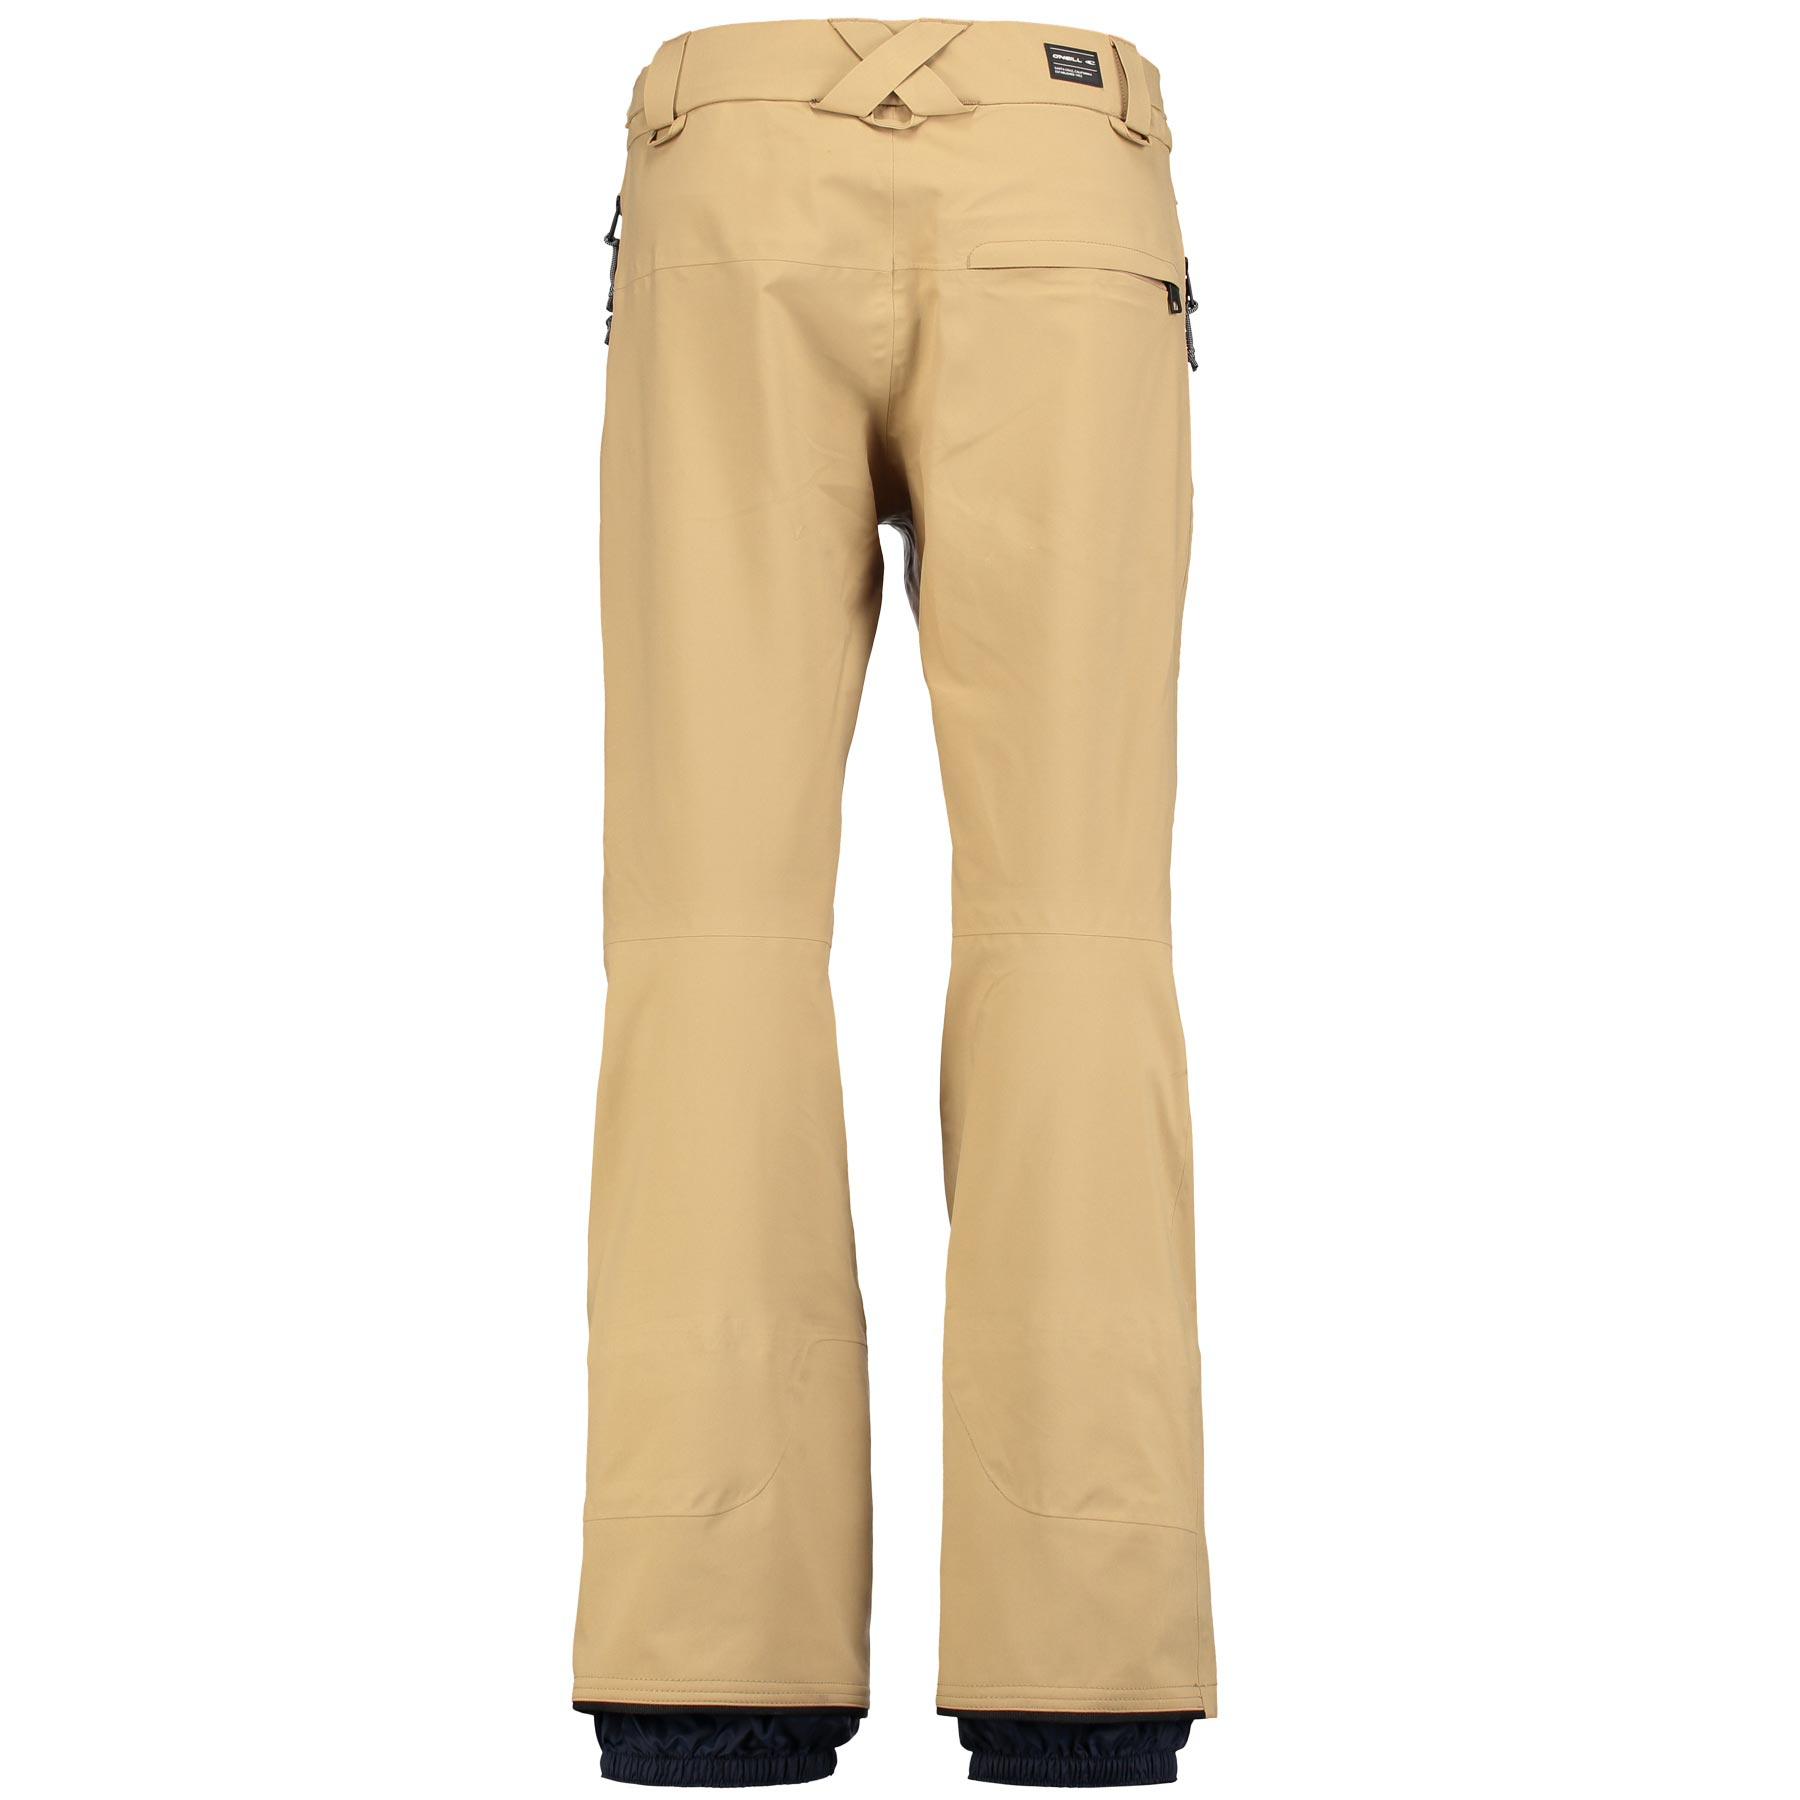 O'Neill: Jeremy Jones 3L Pants